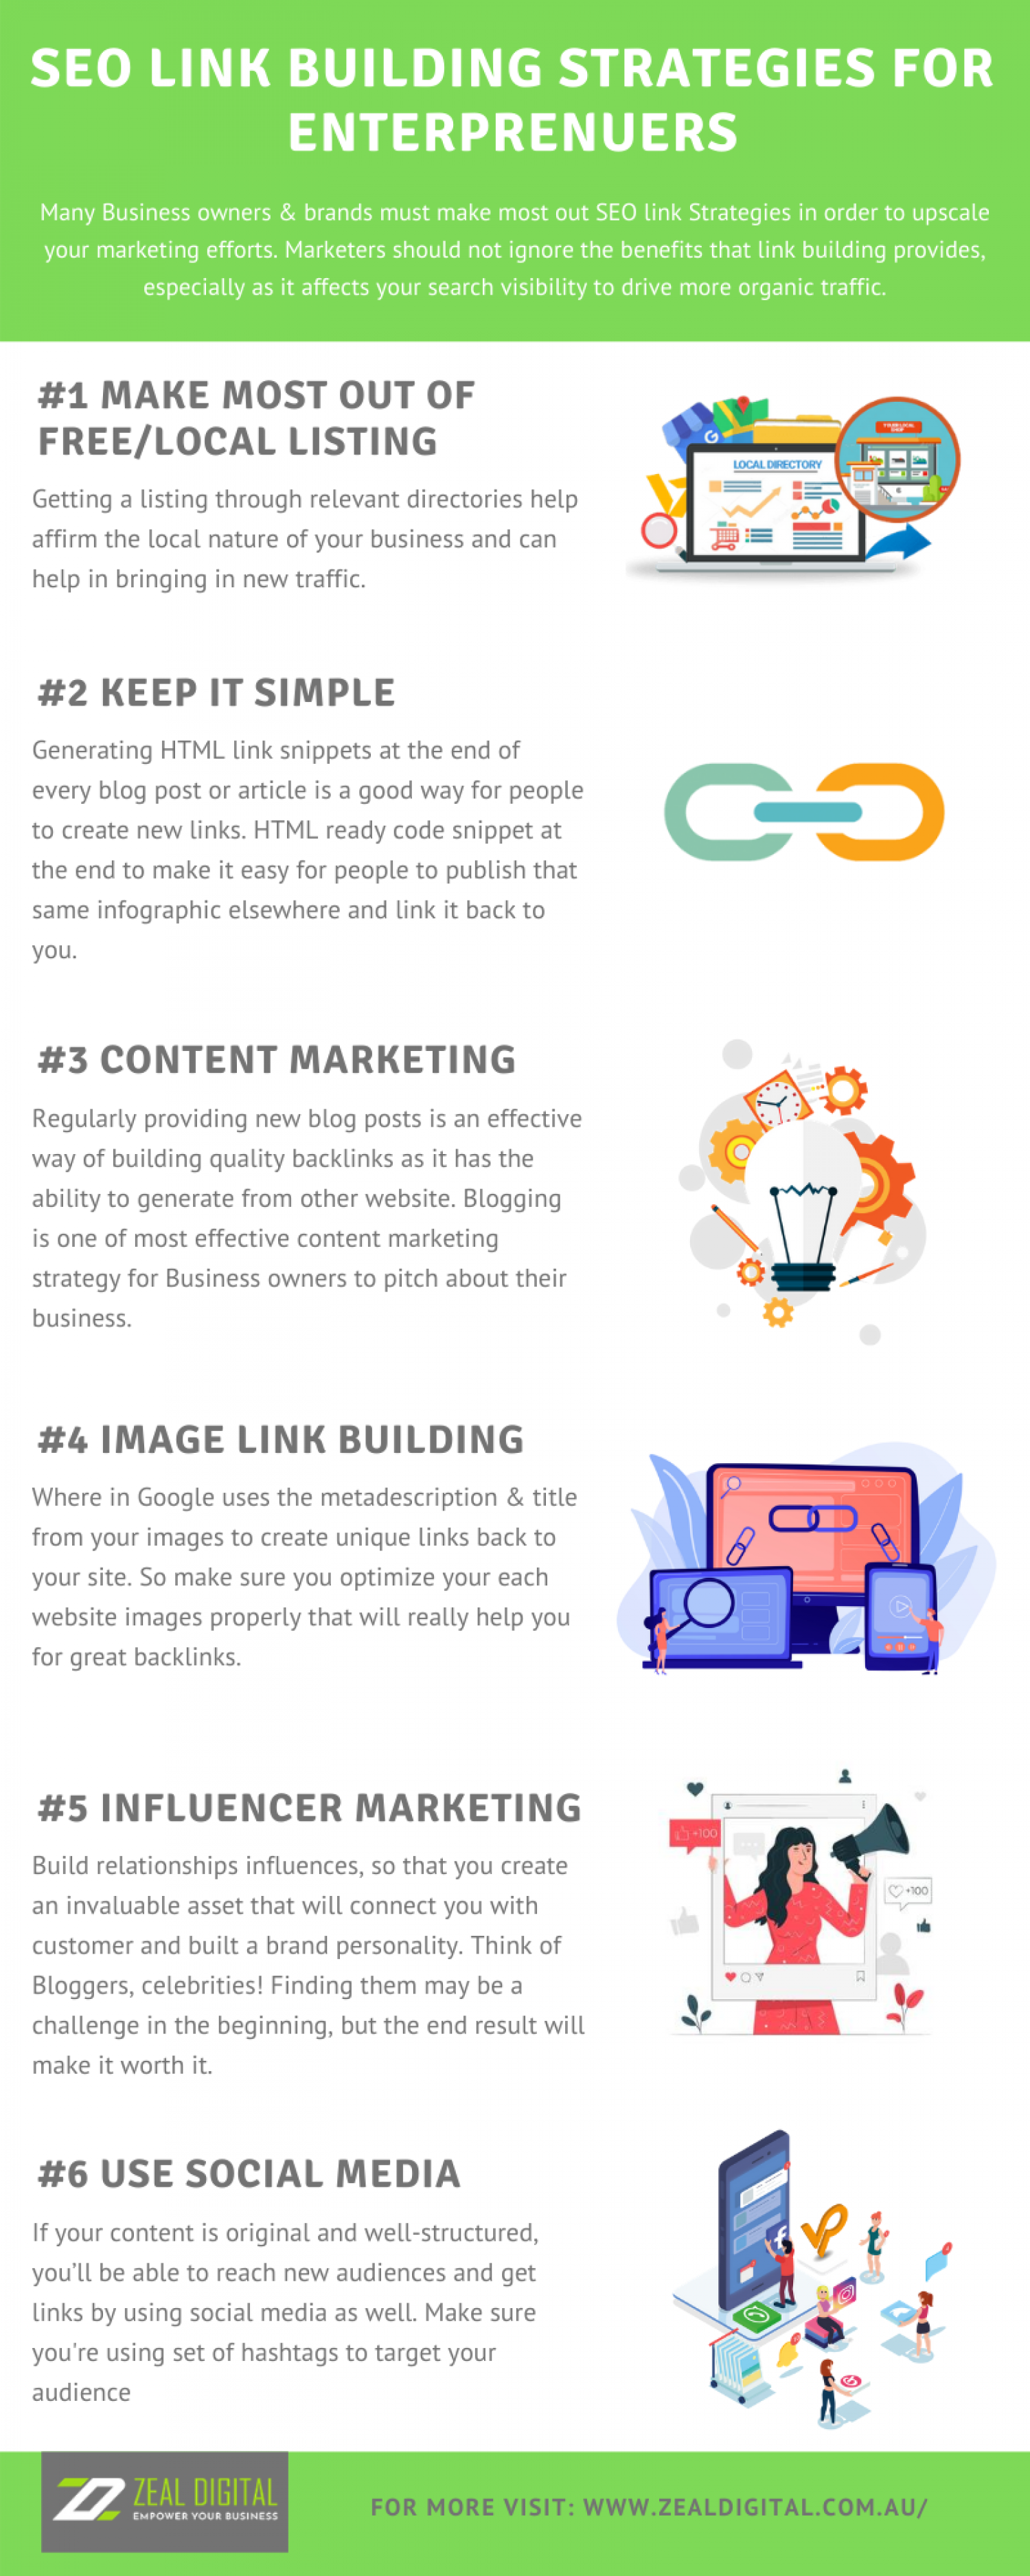 SEO link Building Strategies for Enterpernuers Infographic